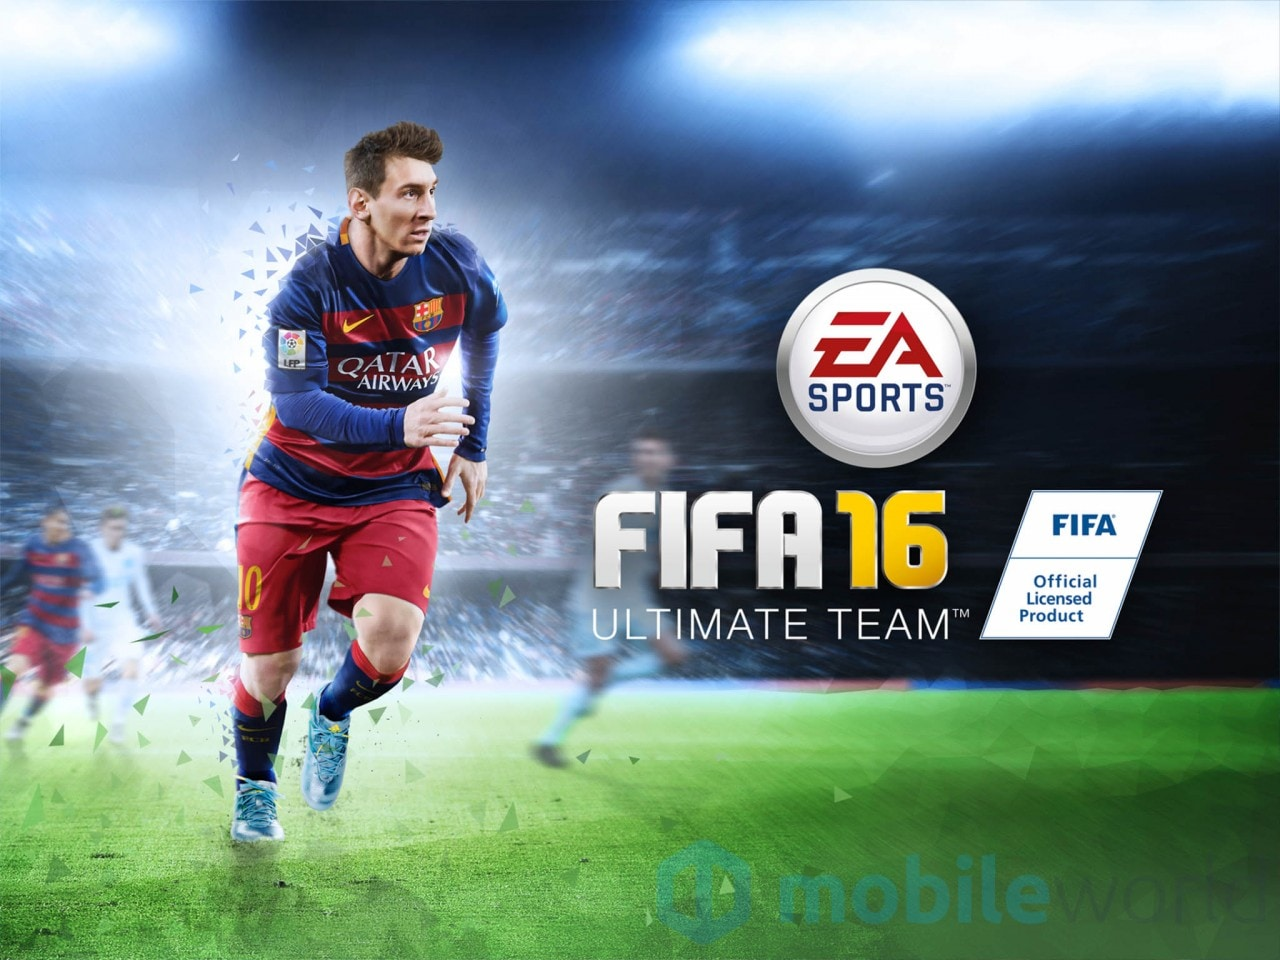 FIFA 16 Ultimate Team Final